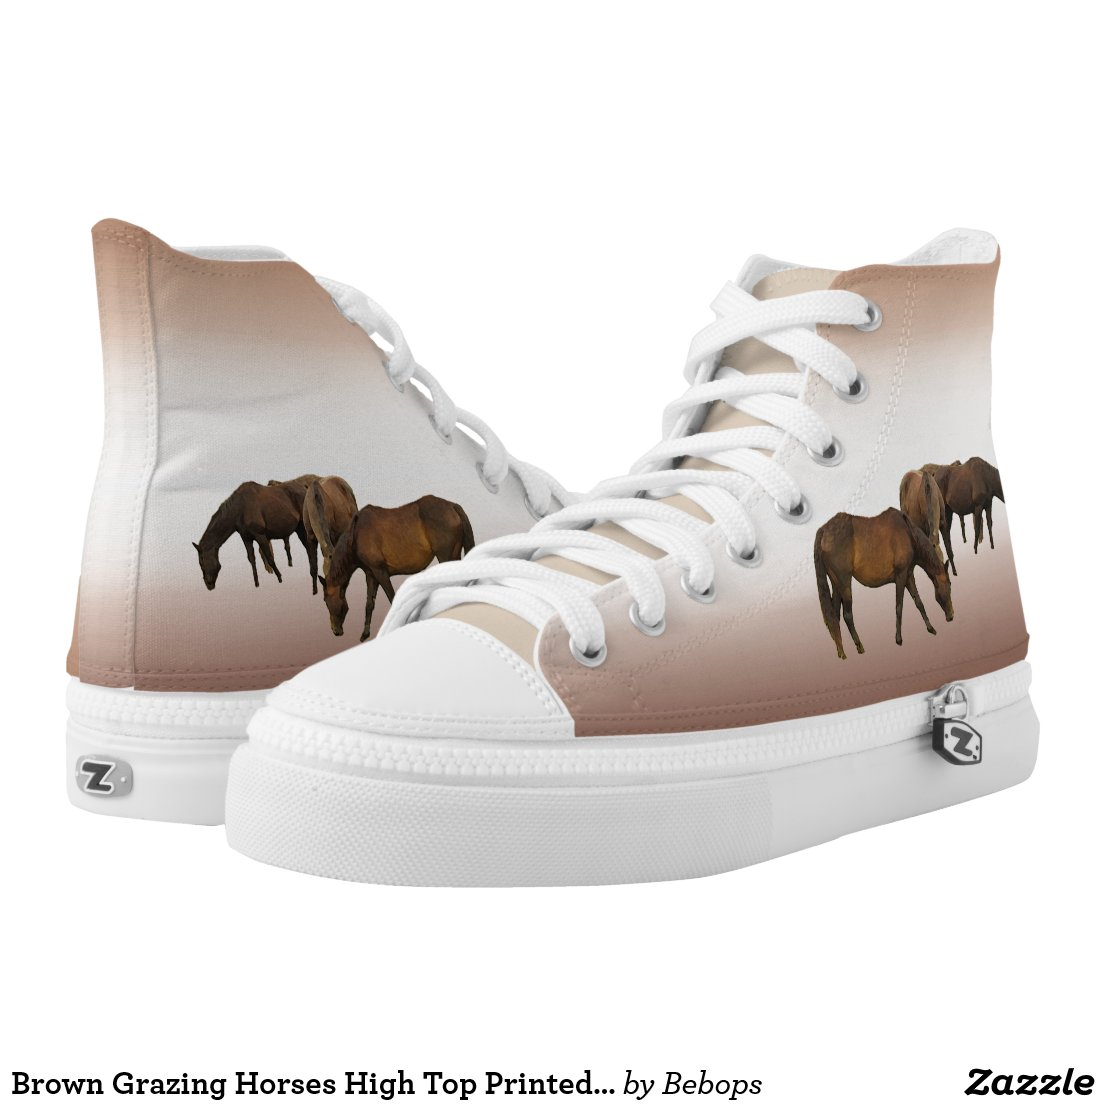 Brown Grazing Horses High Top Printed Shoes